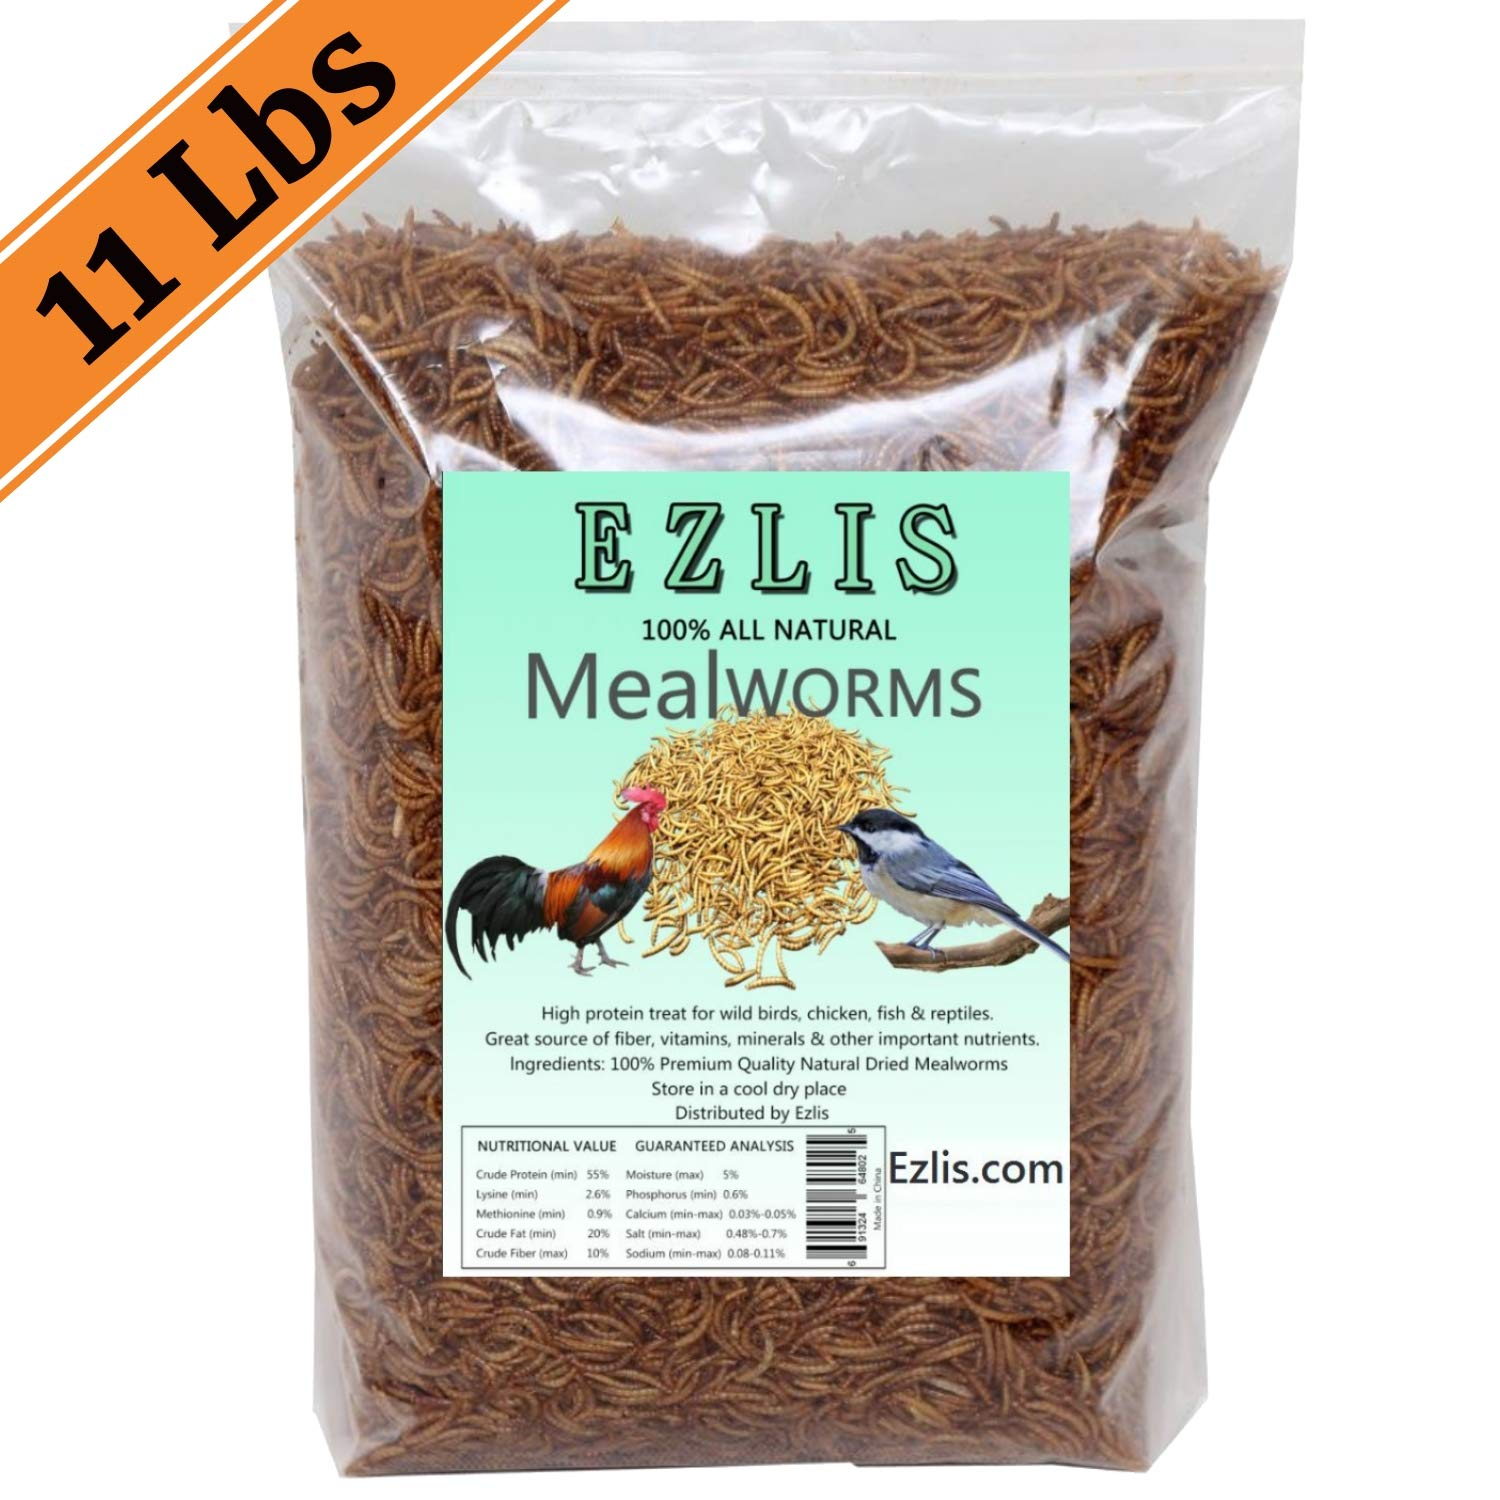 Ezlis Dried Mealworms for Chickens 11lbs - Chicken Treats, Duck Feed, Organic Chicken Feed, High-Protein Meal Worms Bulk Food for Chickens, Bluebird Food, Poultry Feed, Hens, Wild Birds, Fish, Turtle by Ezlis